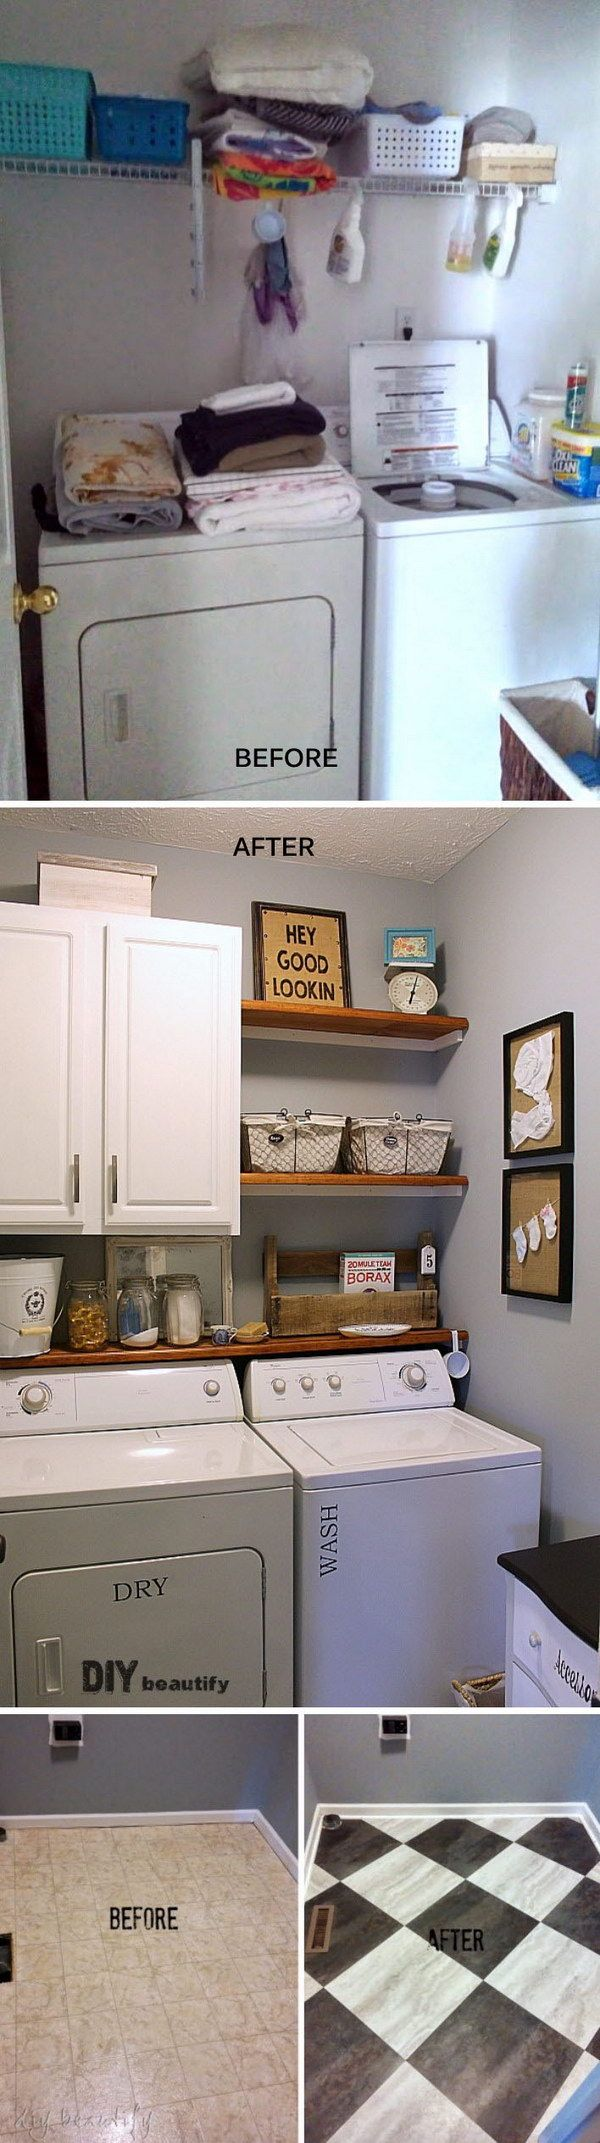 Learn How Small And Practical Changes In Your Laundry Room Can Make It More  Organized And